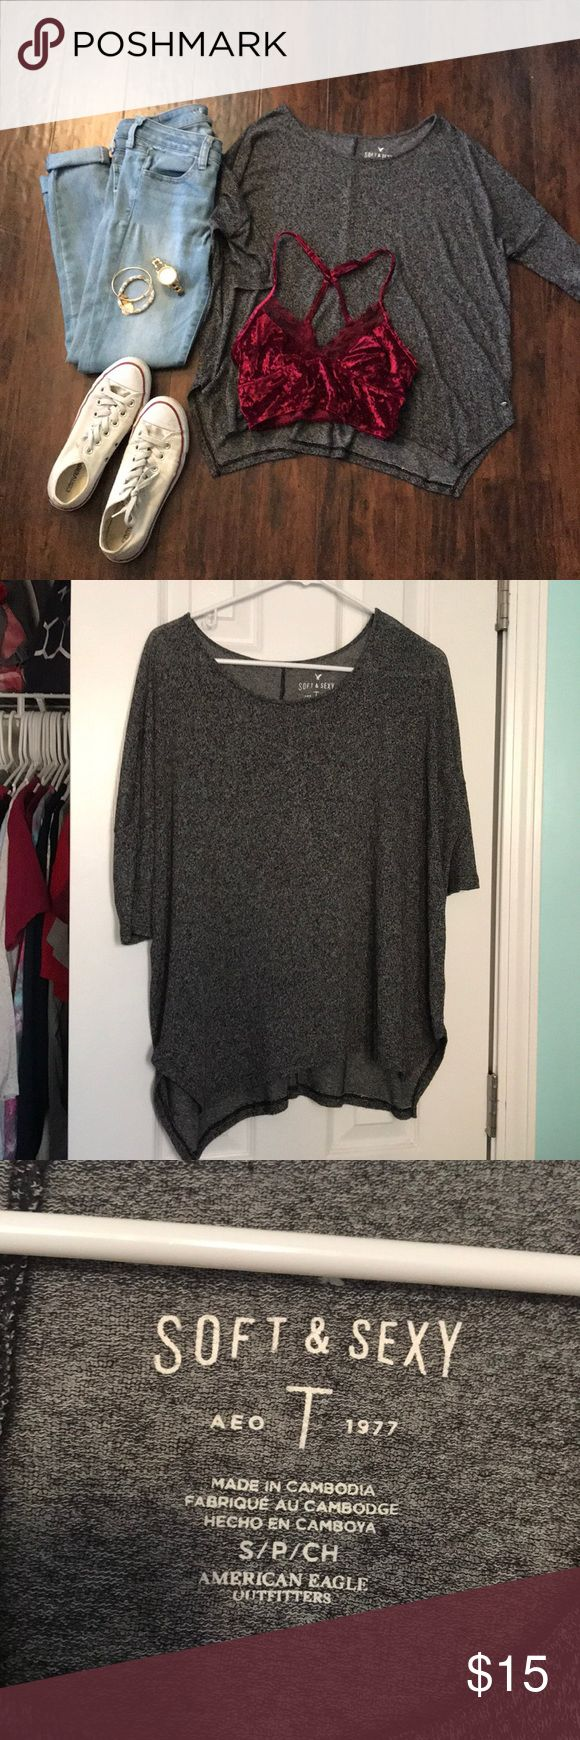 BOGO 1/2 OFF Slouchy grey 3/4 sleeve top Dark grey slouchy top, super soft, looks super cute paired with a bralette, gently used & in great condition ✨make an offer!✨feel free to comment if you have any questions 😊 ‼️ALL LISTINGS BUY ONE GET ONE HALF OFF❗️(of the two items, the less expensive item will be half off) just make a bundle and I'll re-price‼️ American Eagle Outfitters Tops Tees - Short Sleeve